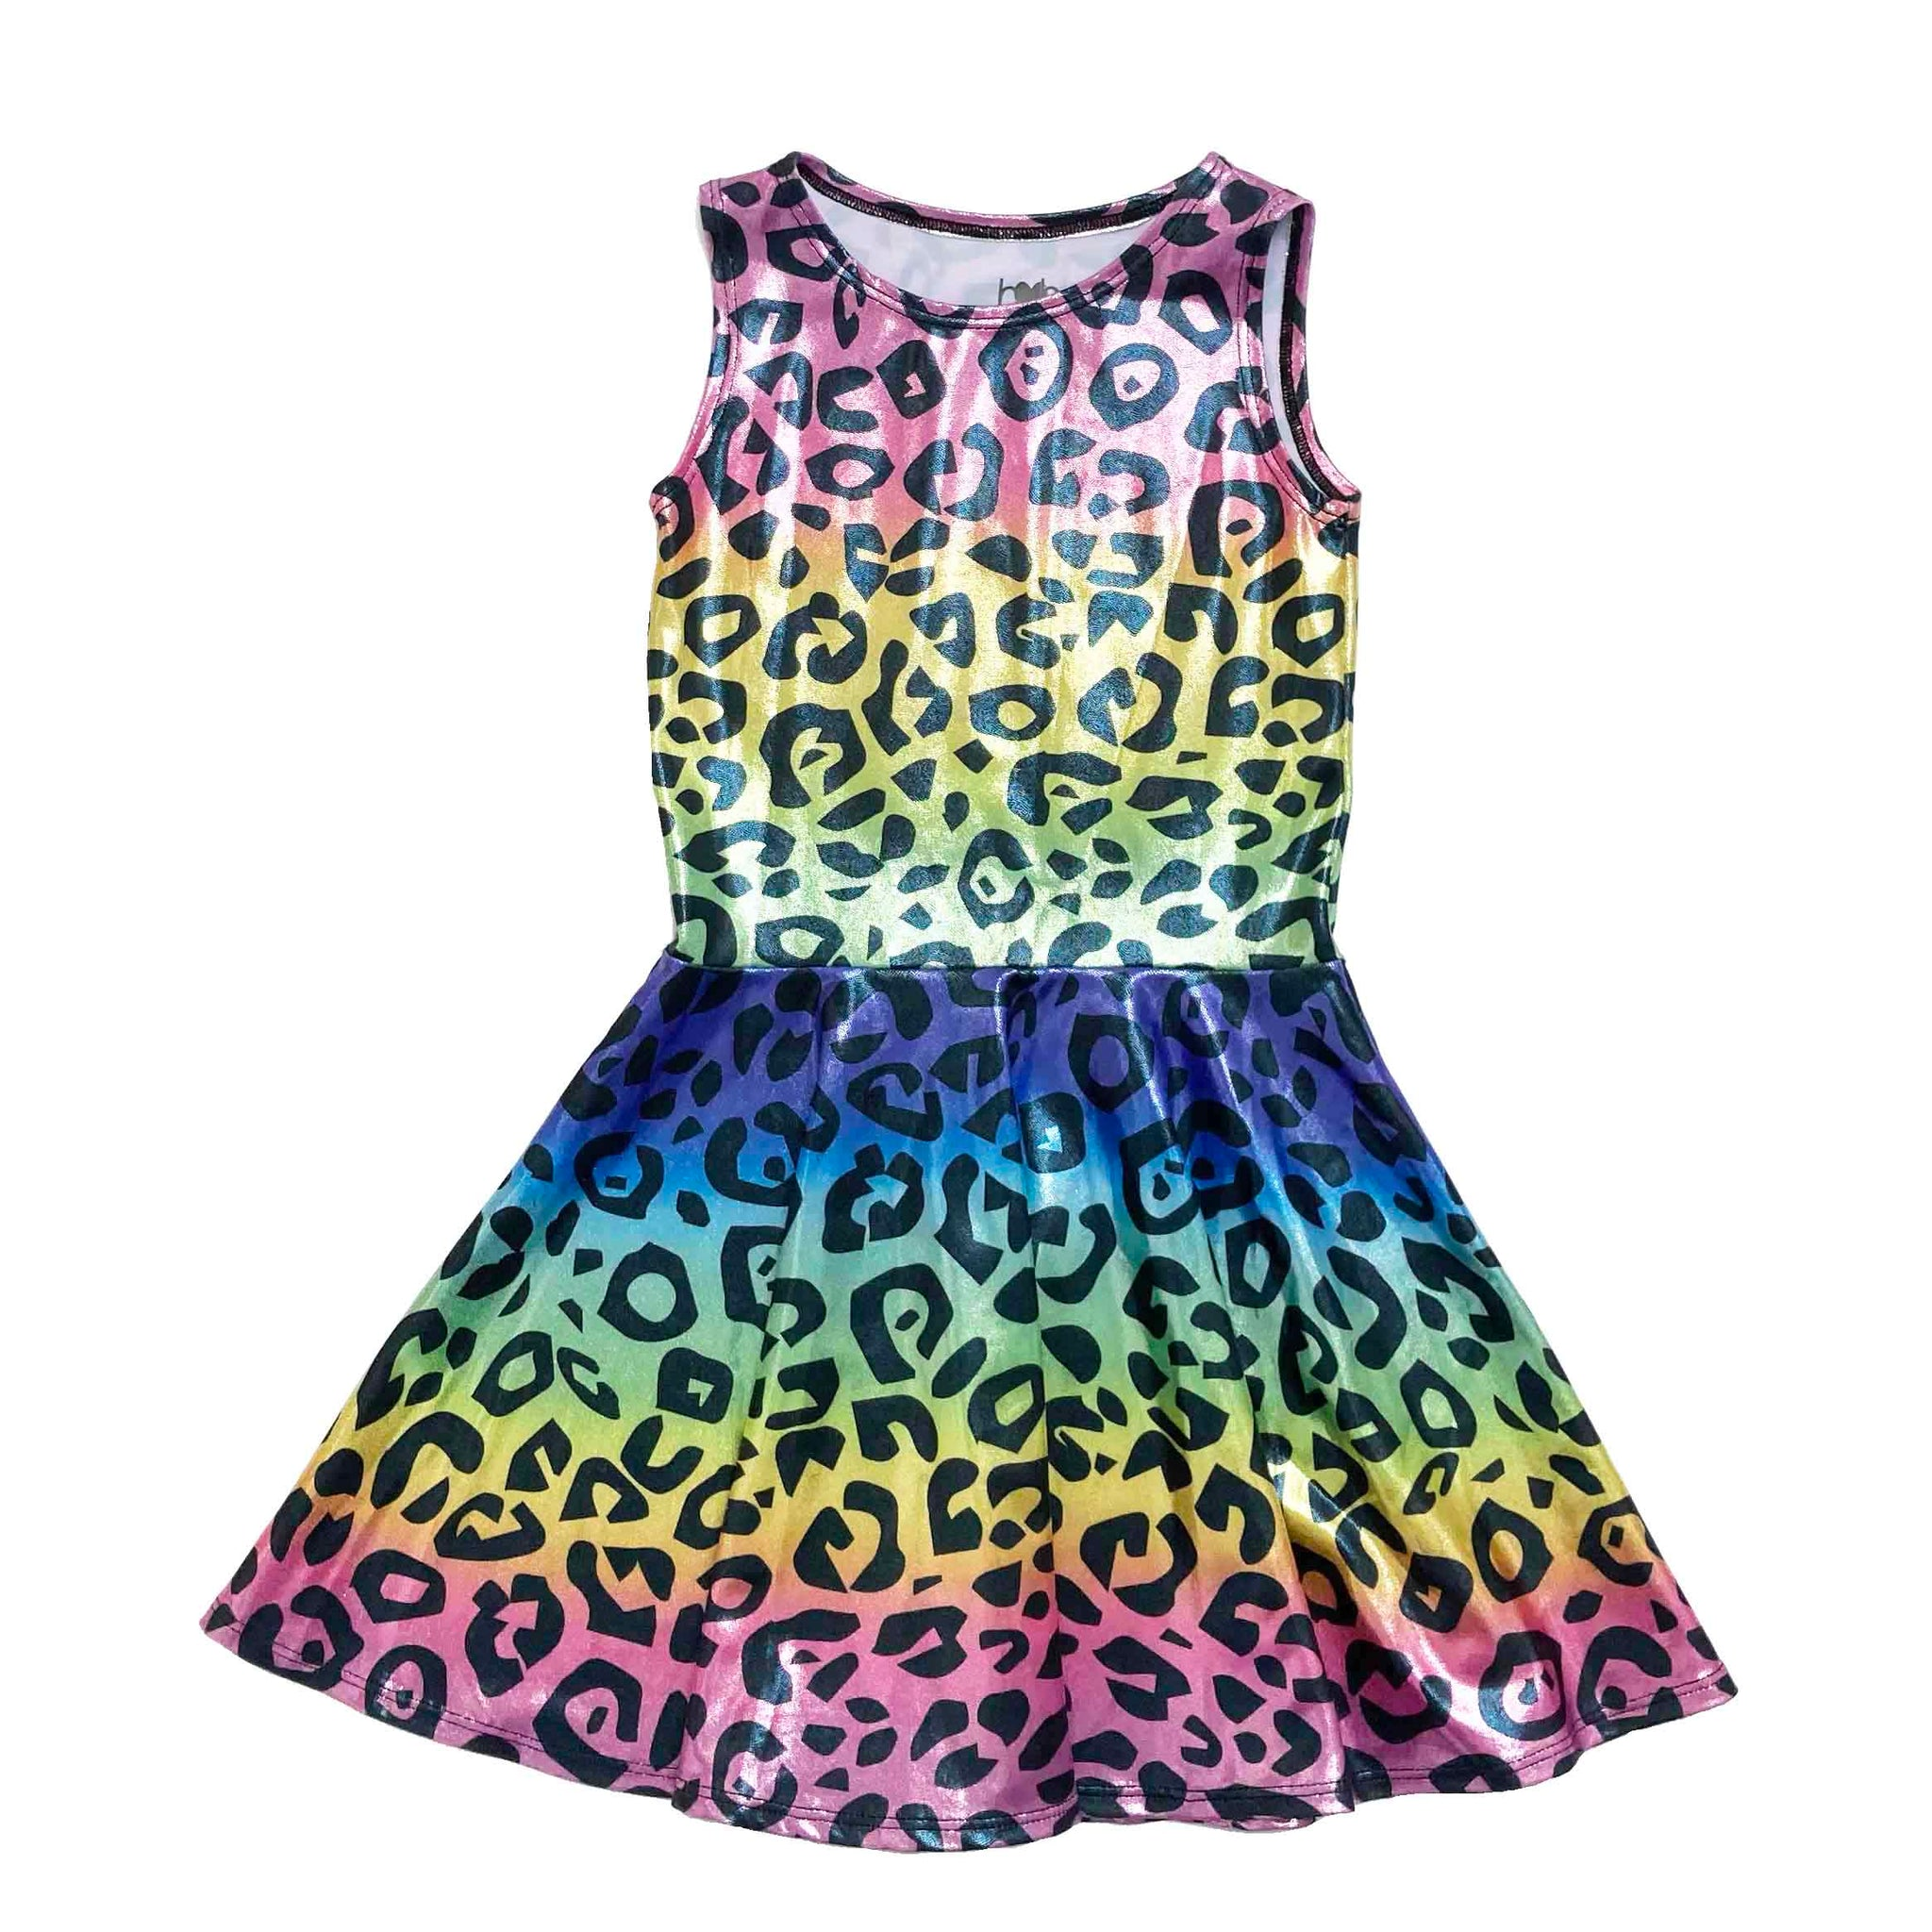 HARPER AND HOPE LEOPARD DRESS 5-6 YEARS